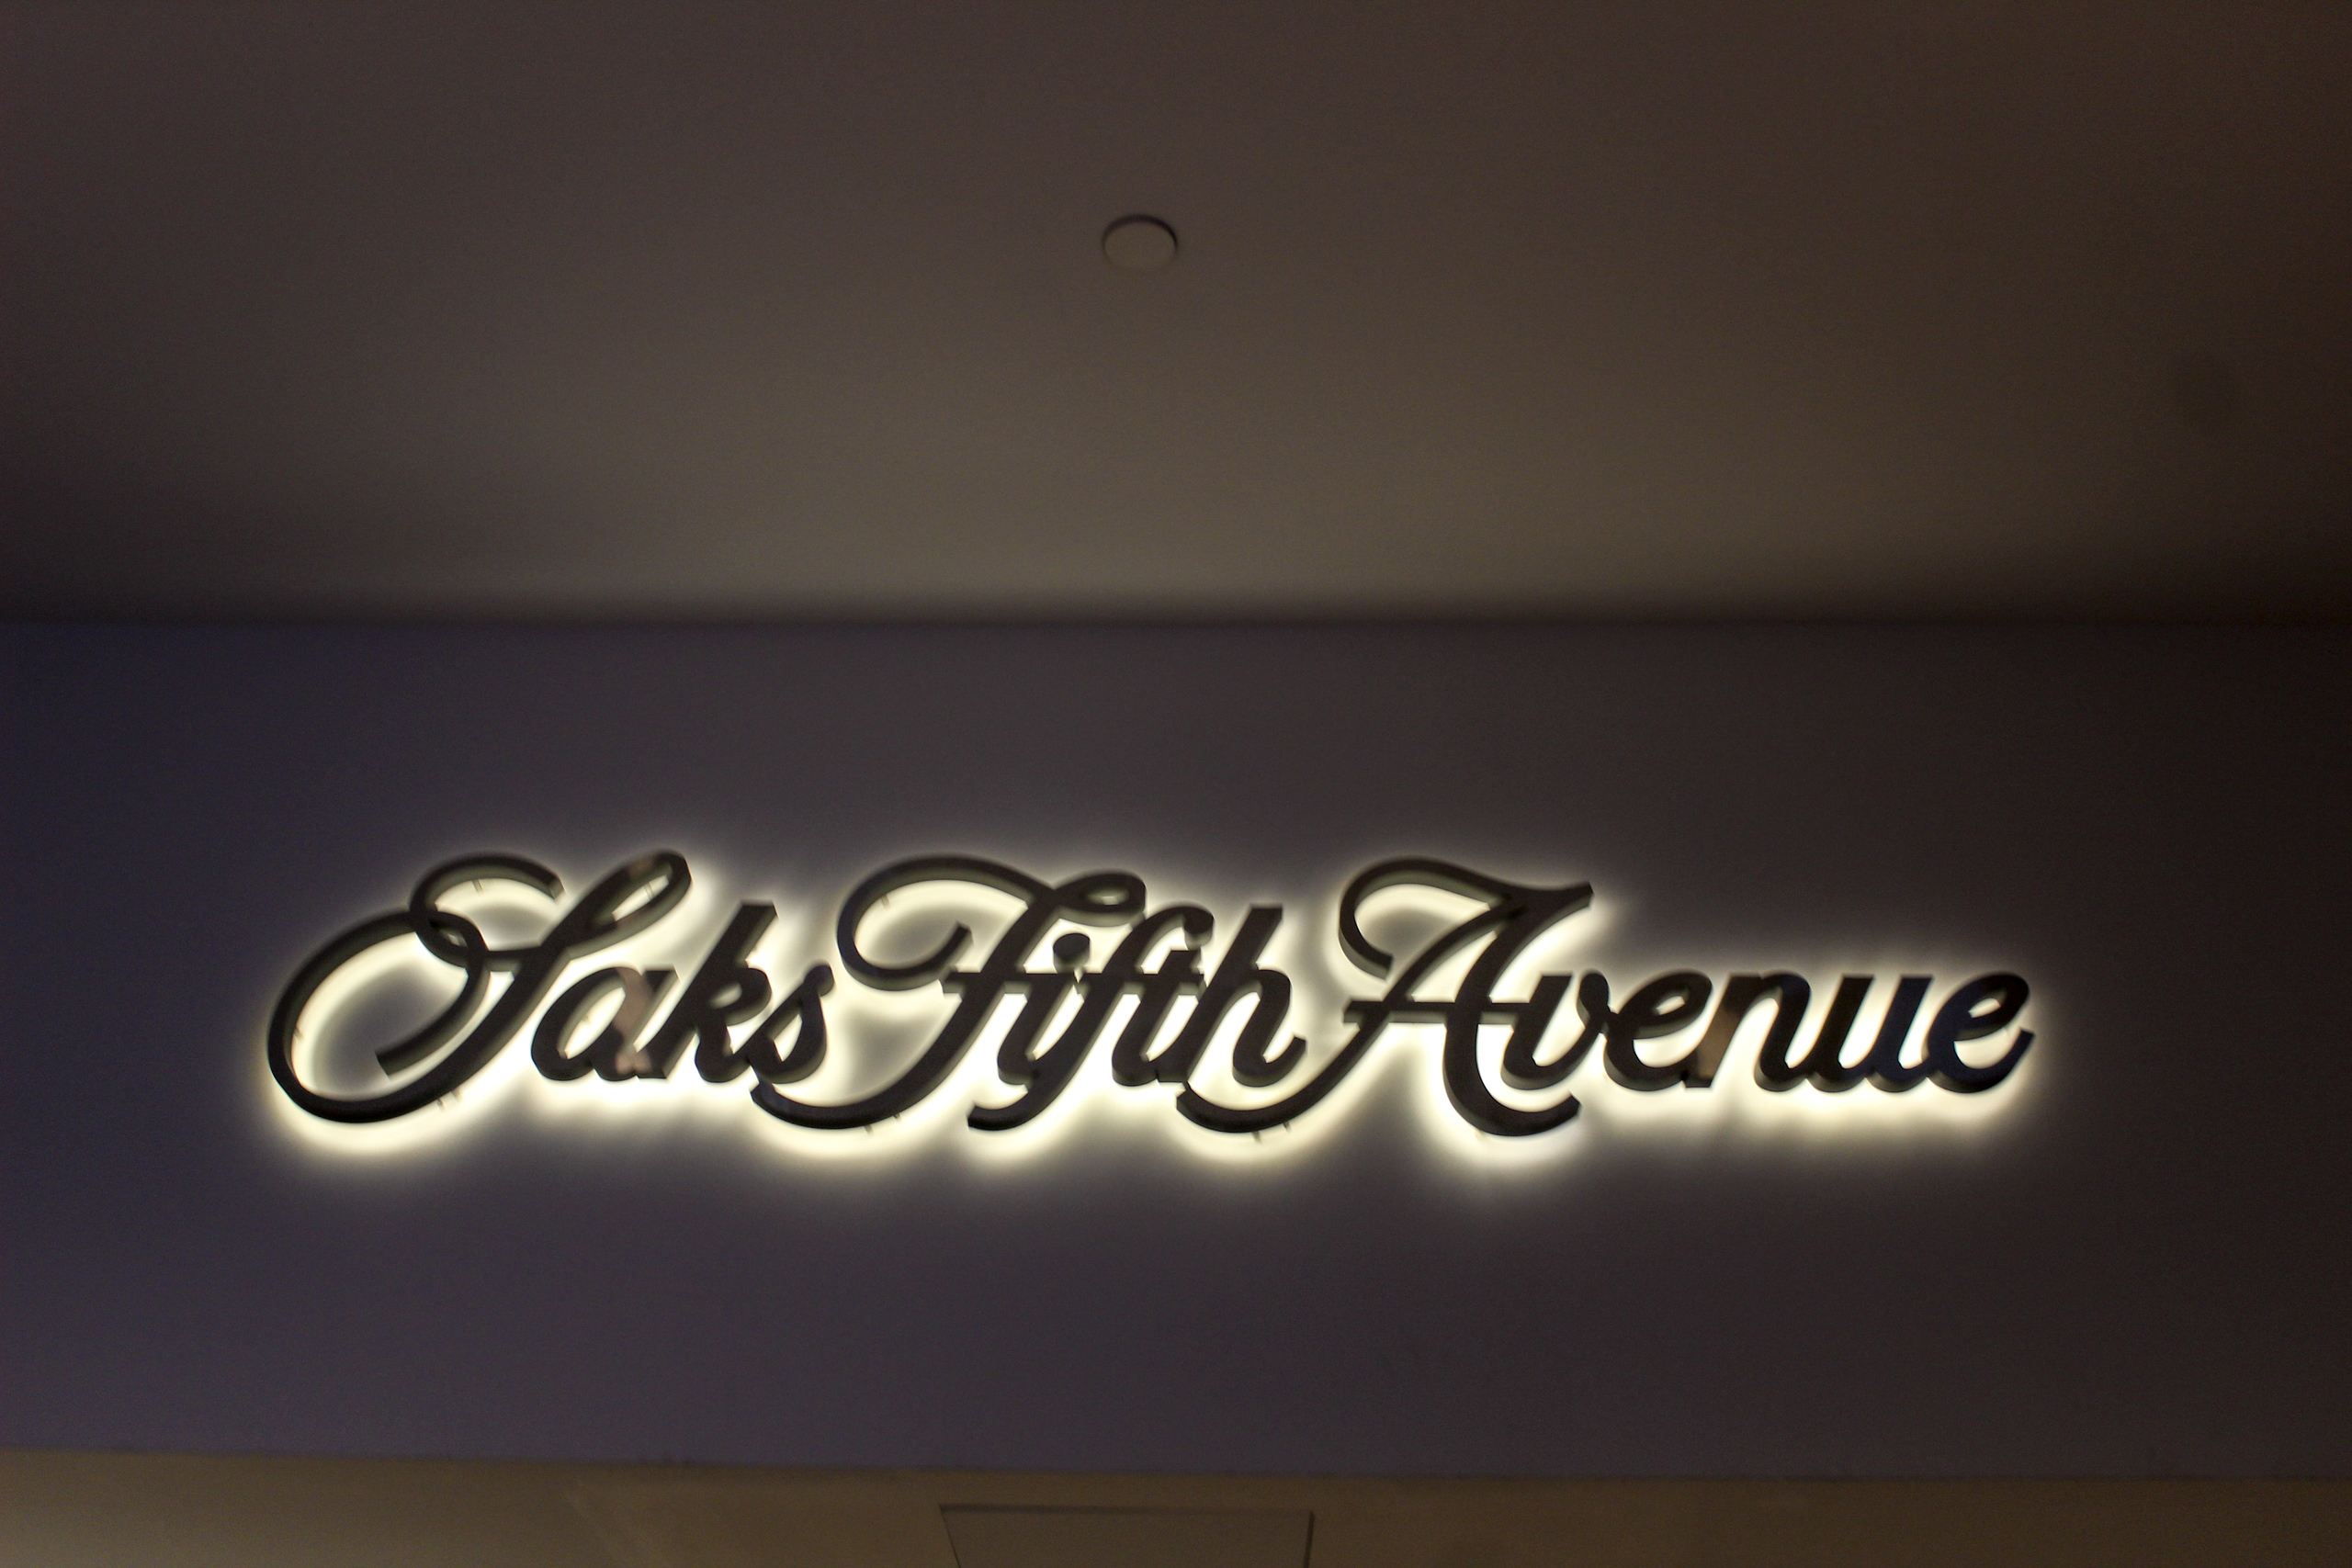 2 days in new york itinerary: shop forever at saks fifth avenue